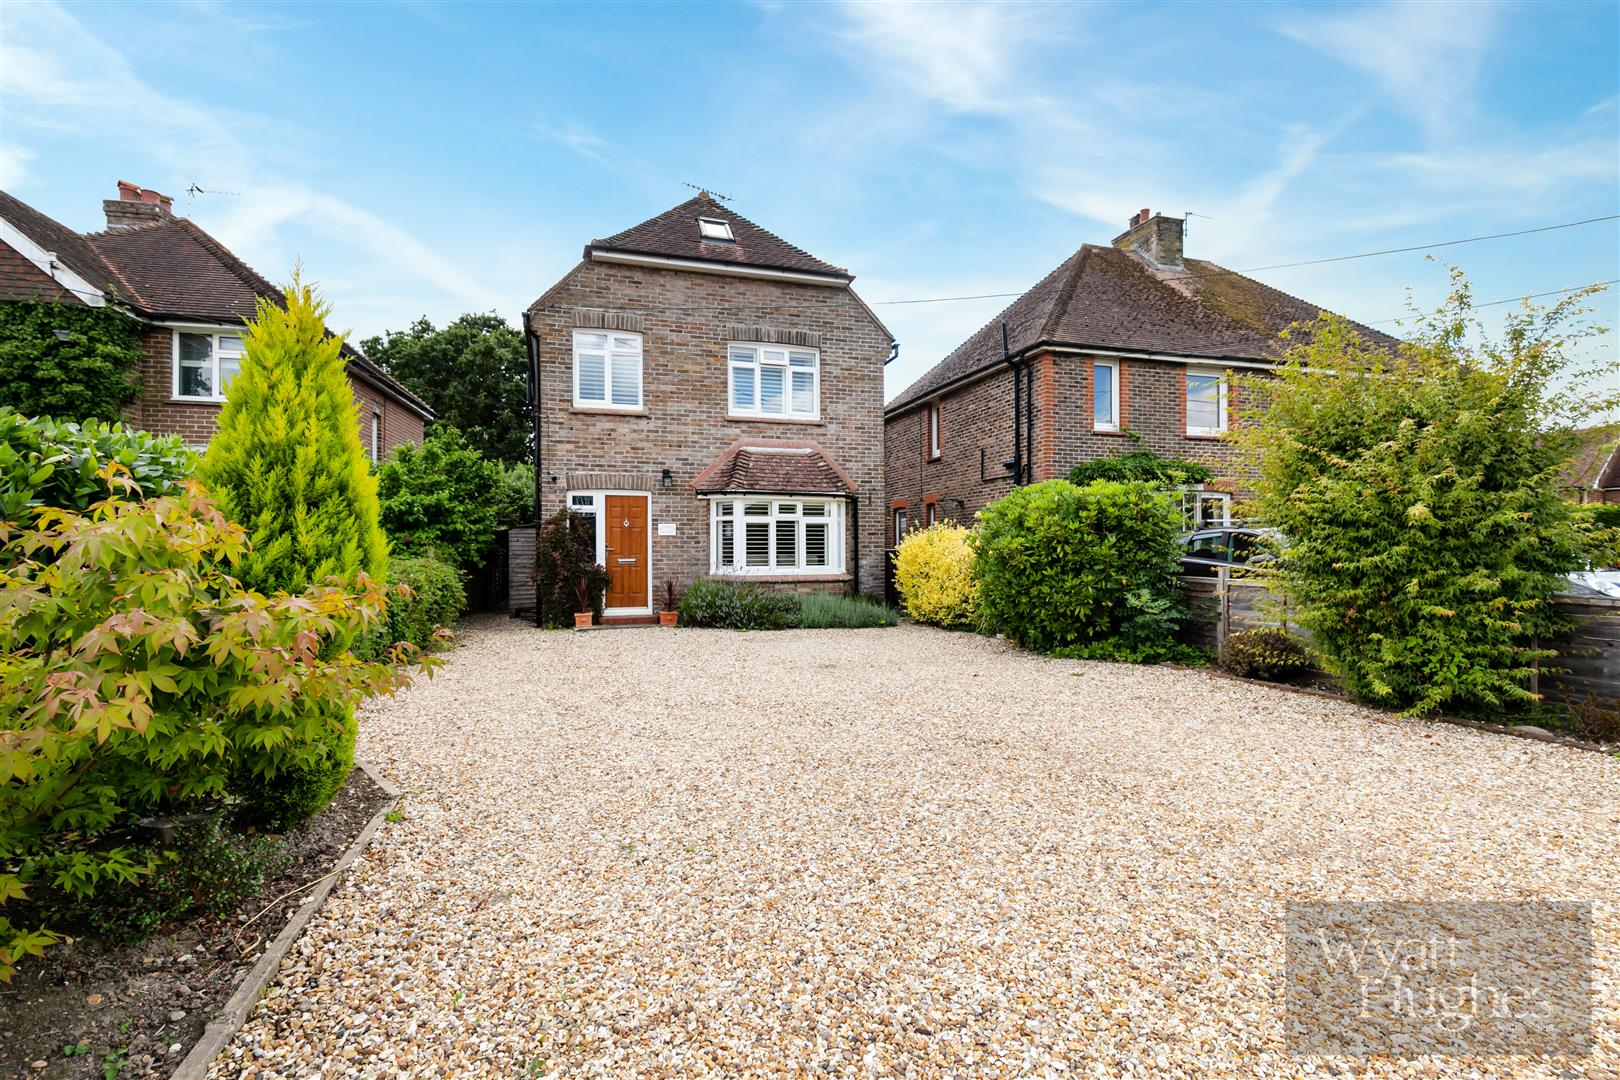 3 bed detached house for sale in The Green, Ninfield - Property Image 1